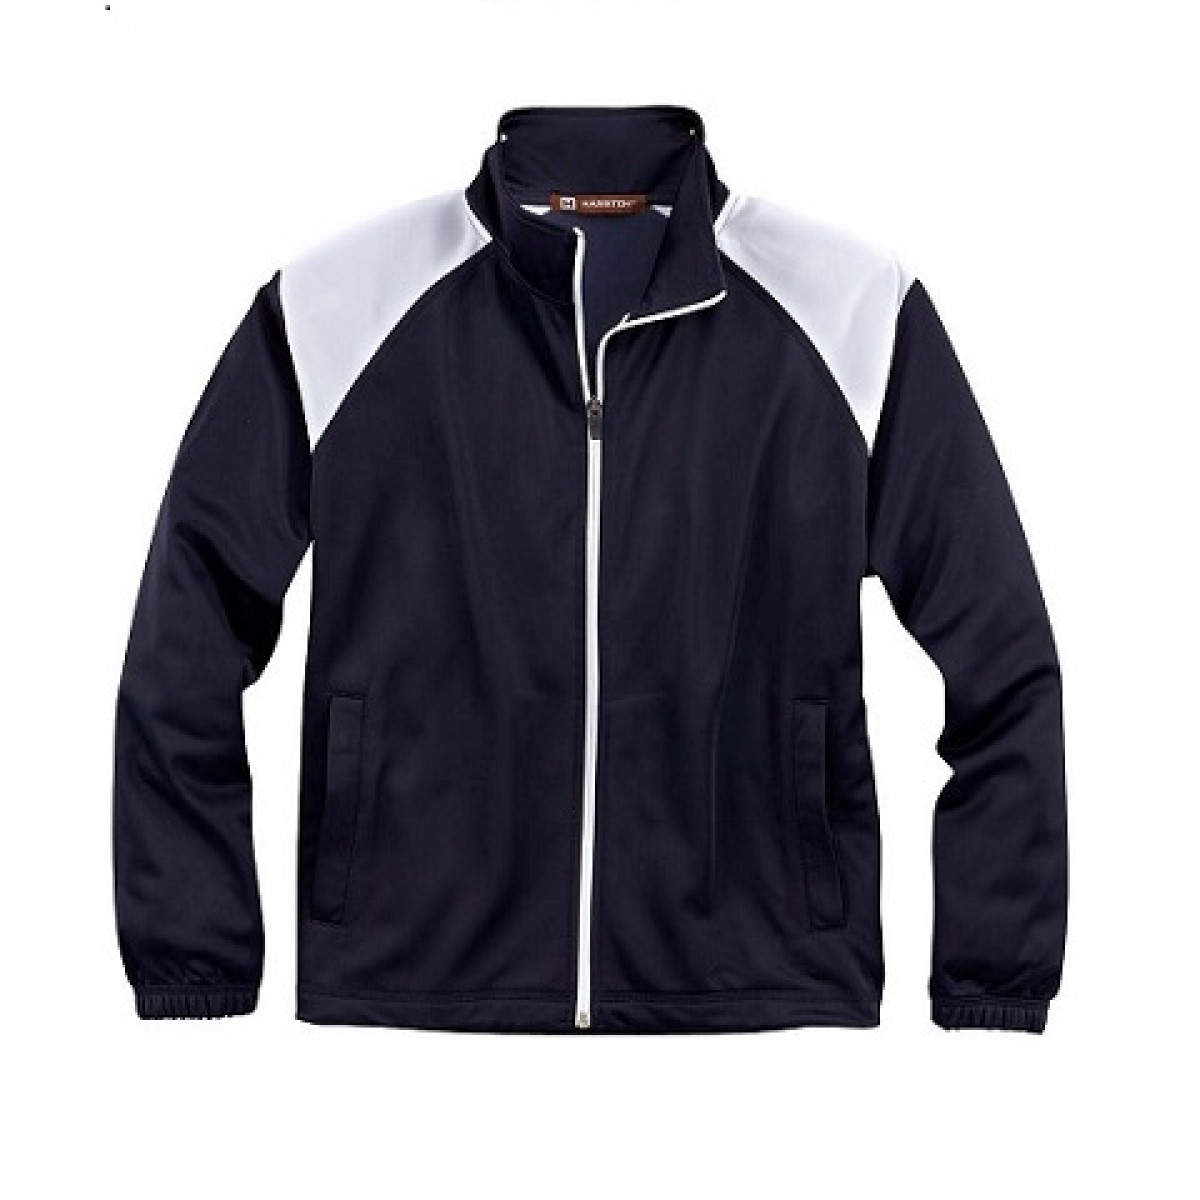 Embroidered Navy Tricot Track Jacket-Navy-2XL